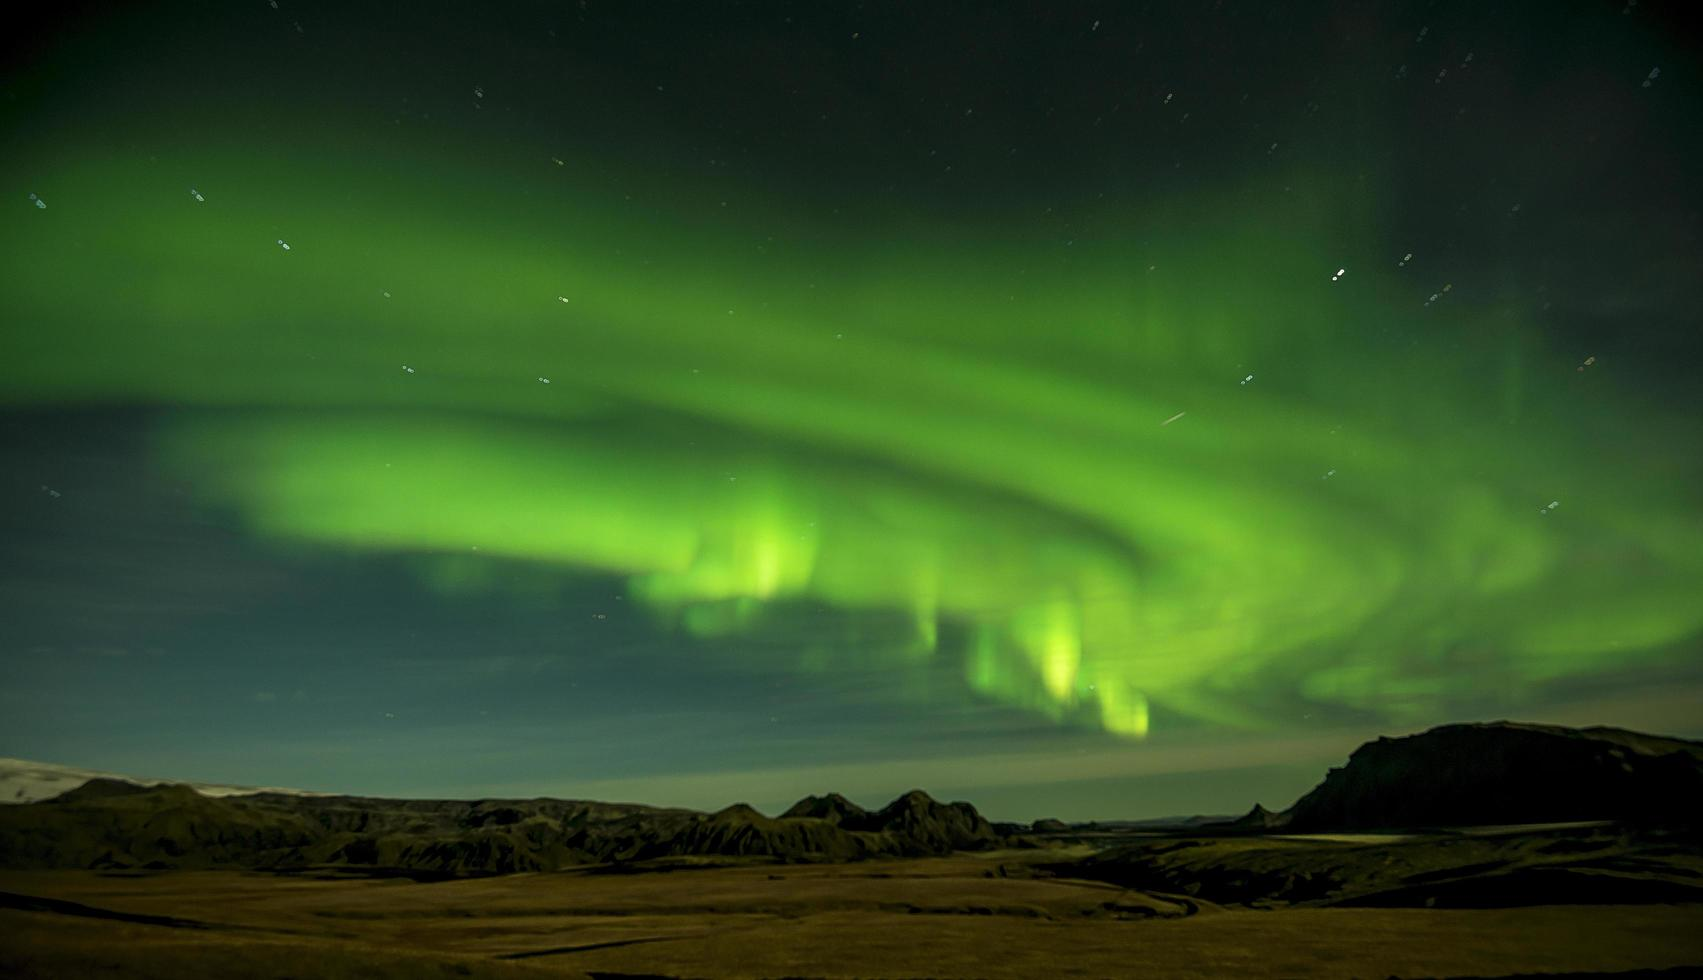 The Northern Lights in Iceland photo